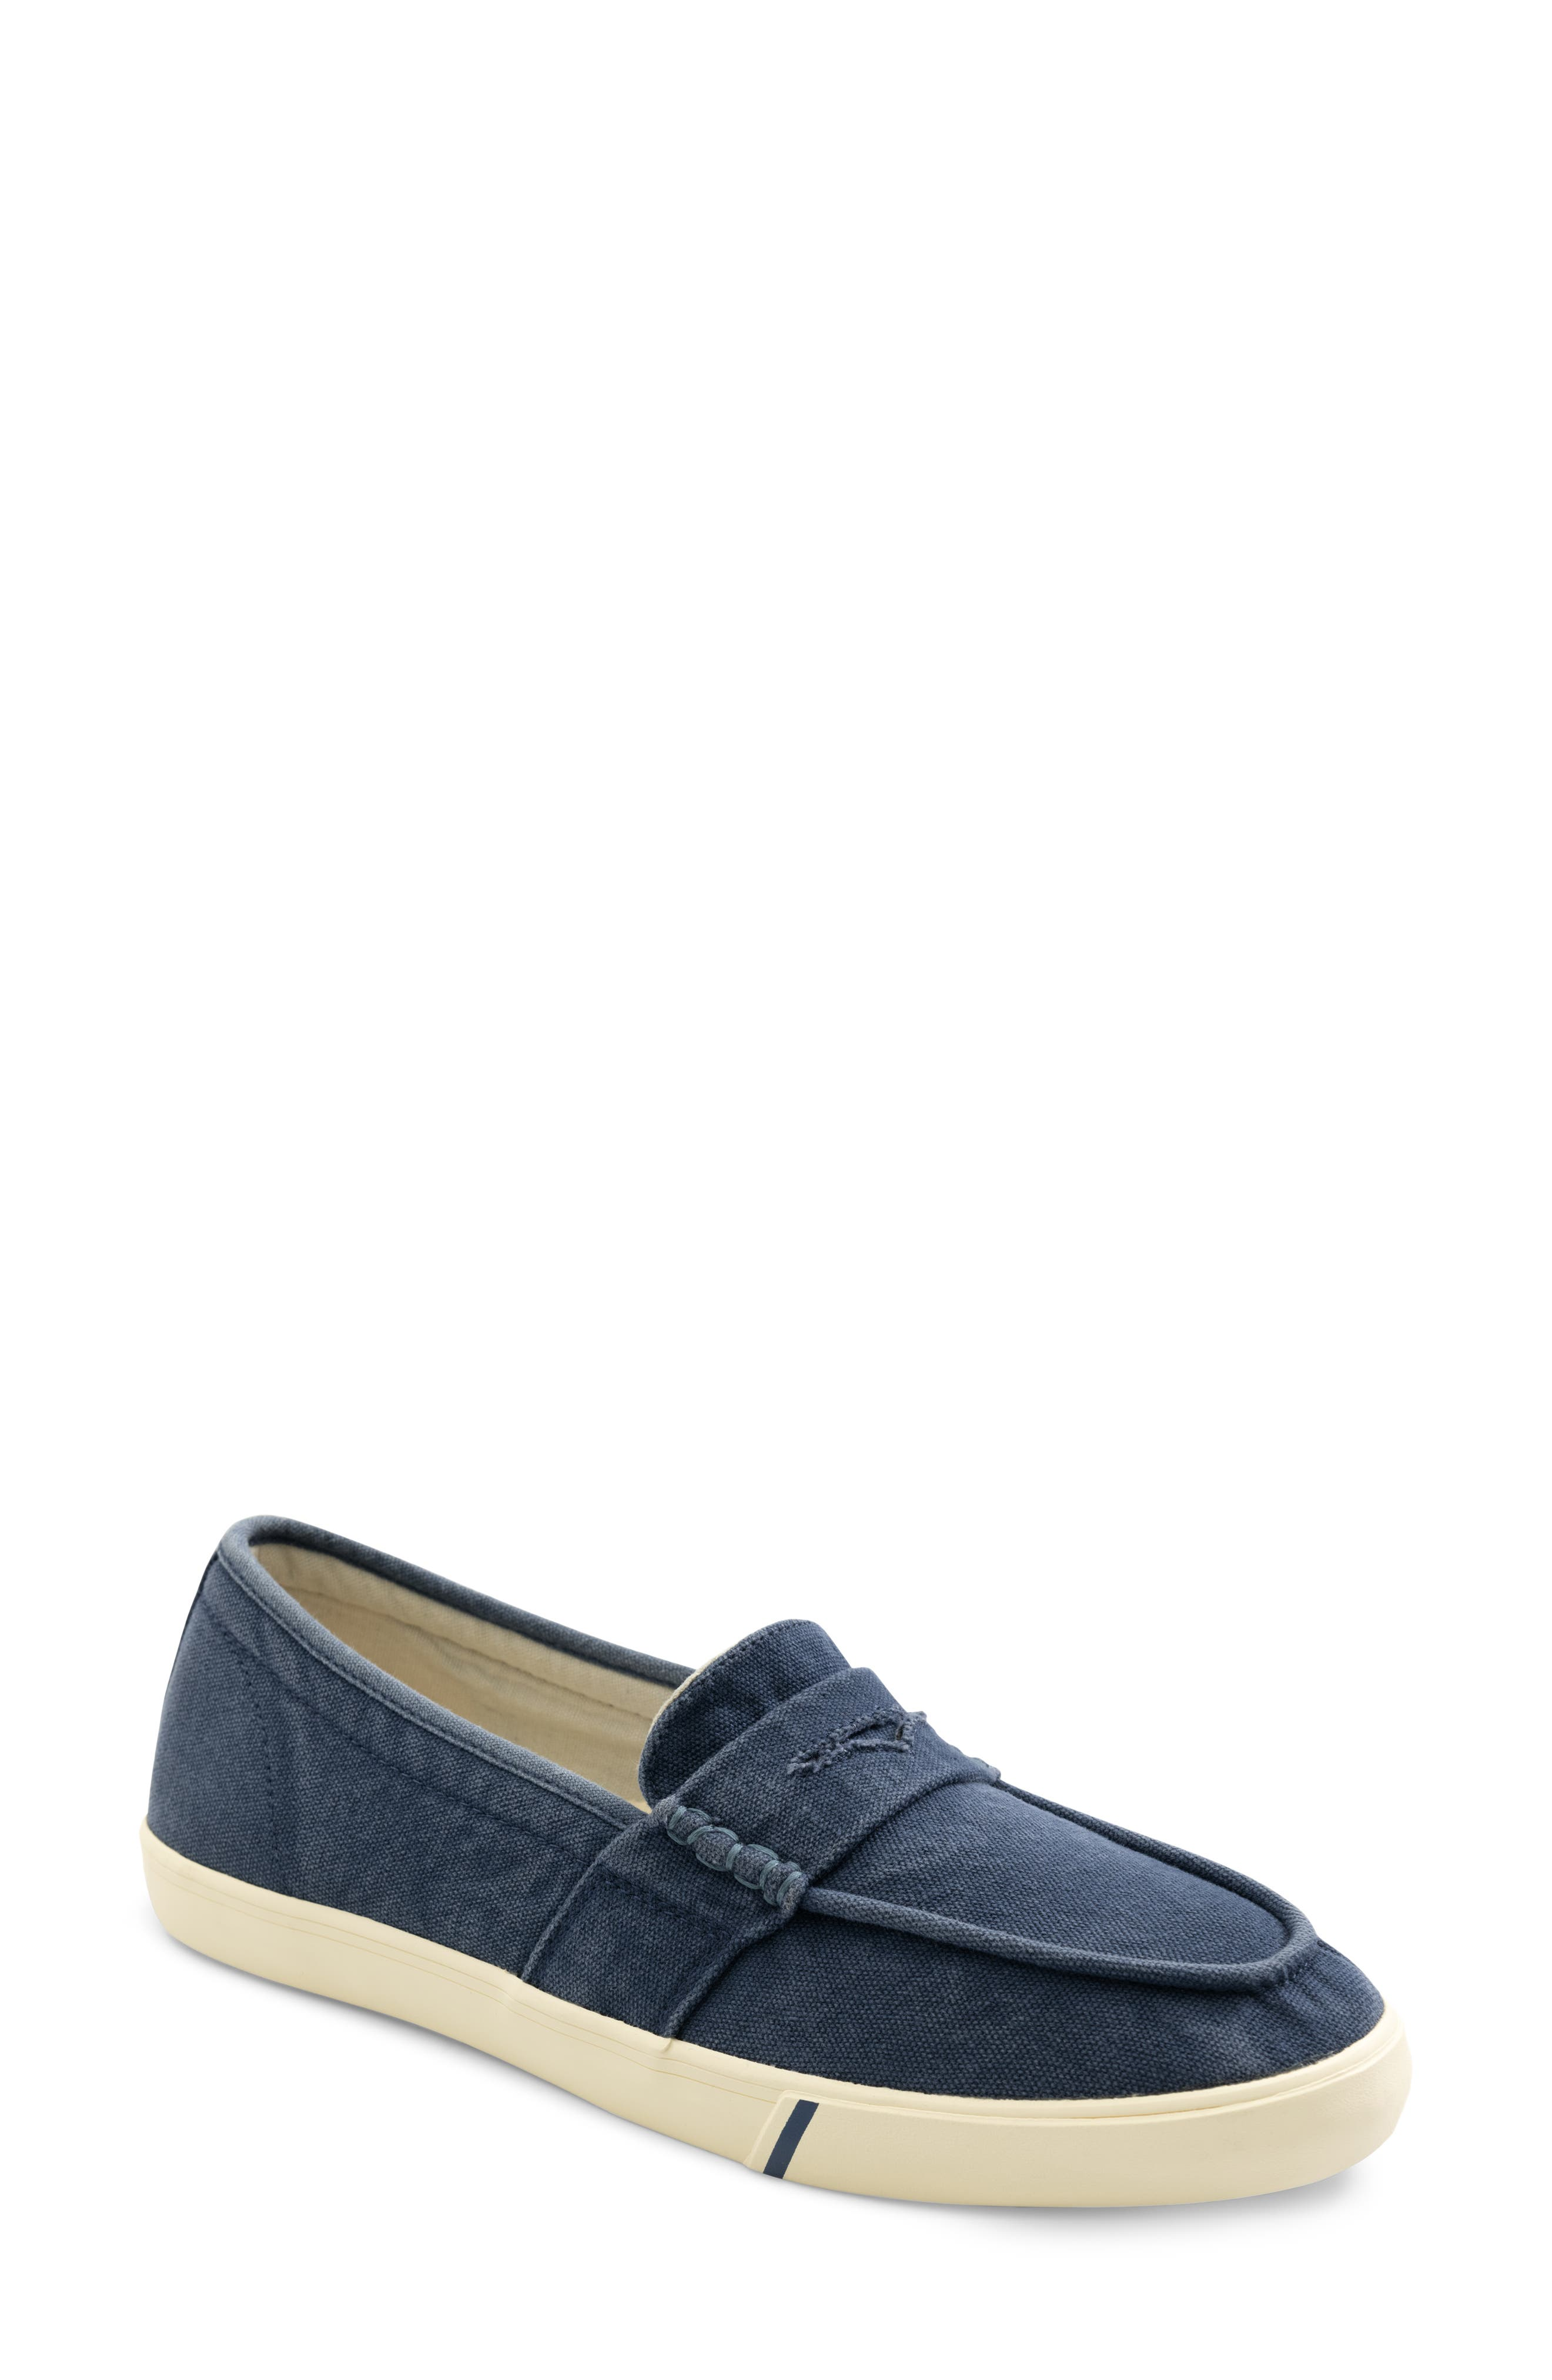 The Canvas Loafer